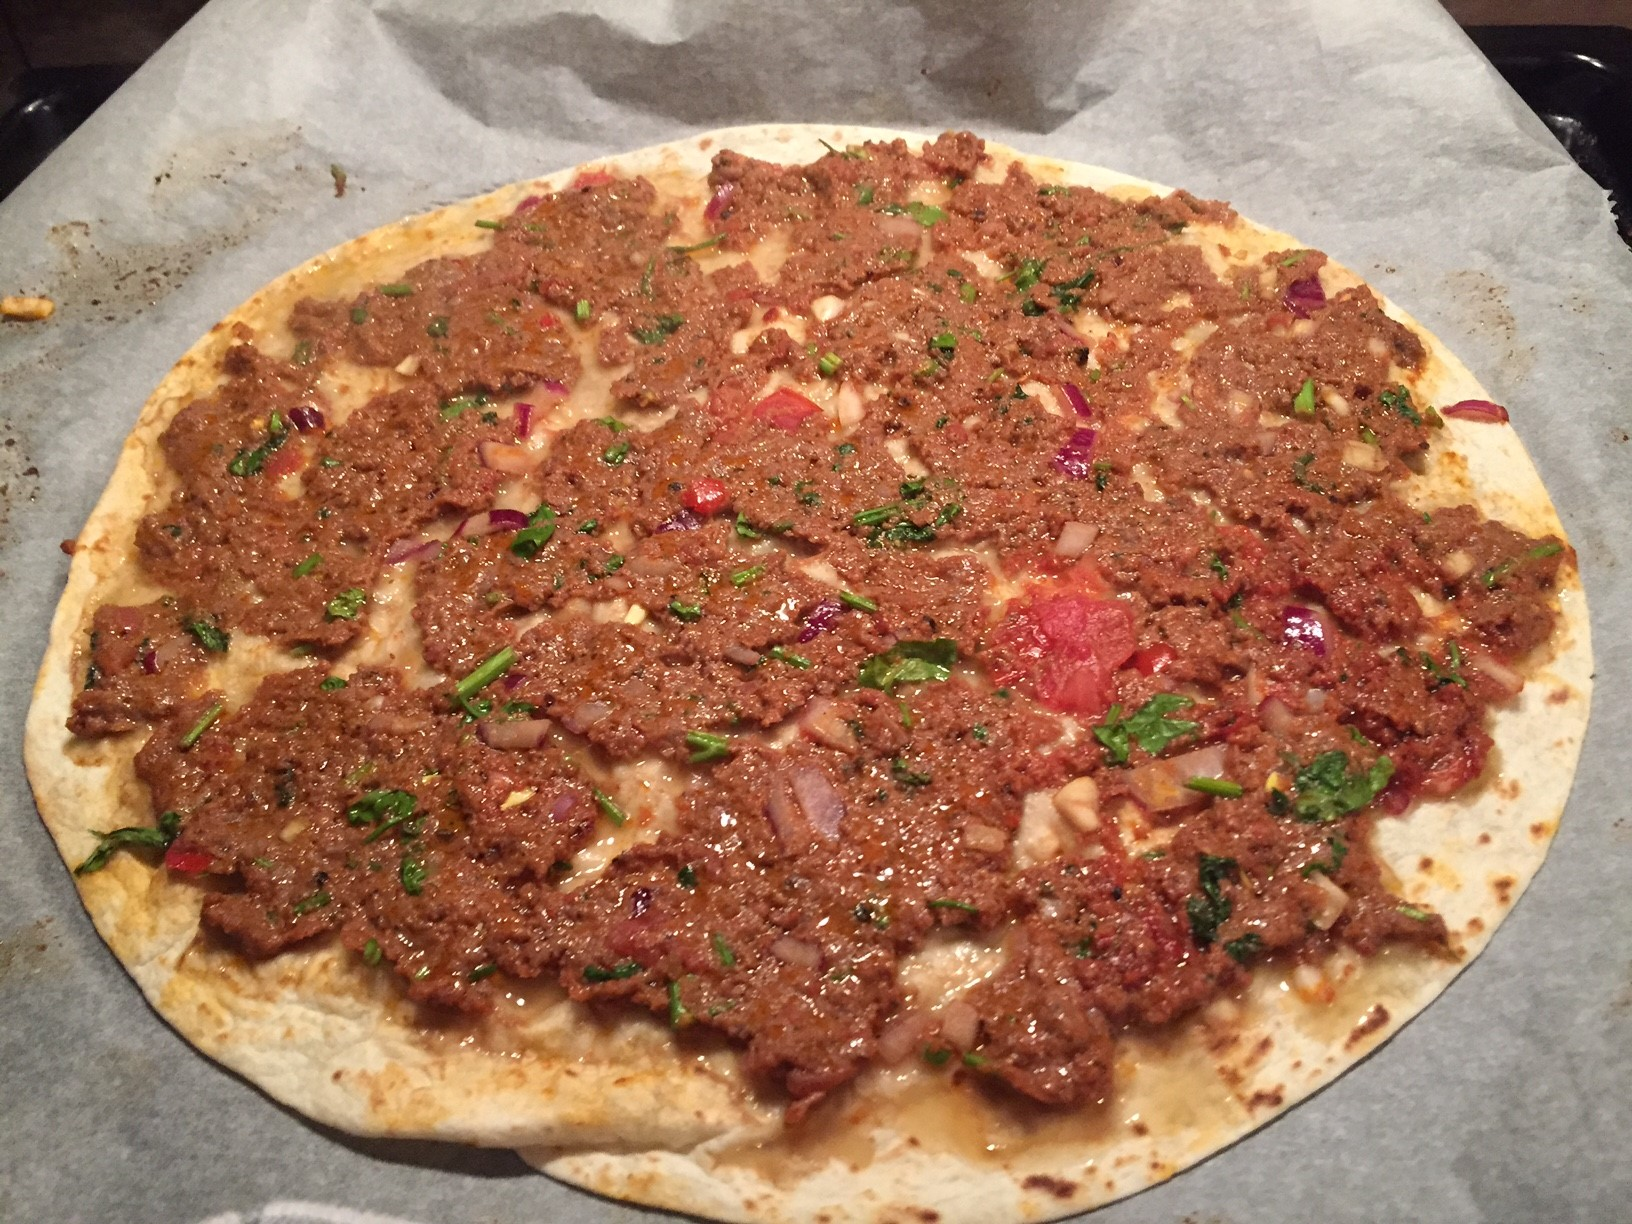 Falsche Tuerkische Pizza in 7 Minuten - Lahmacun low Carb Wrap